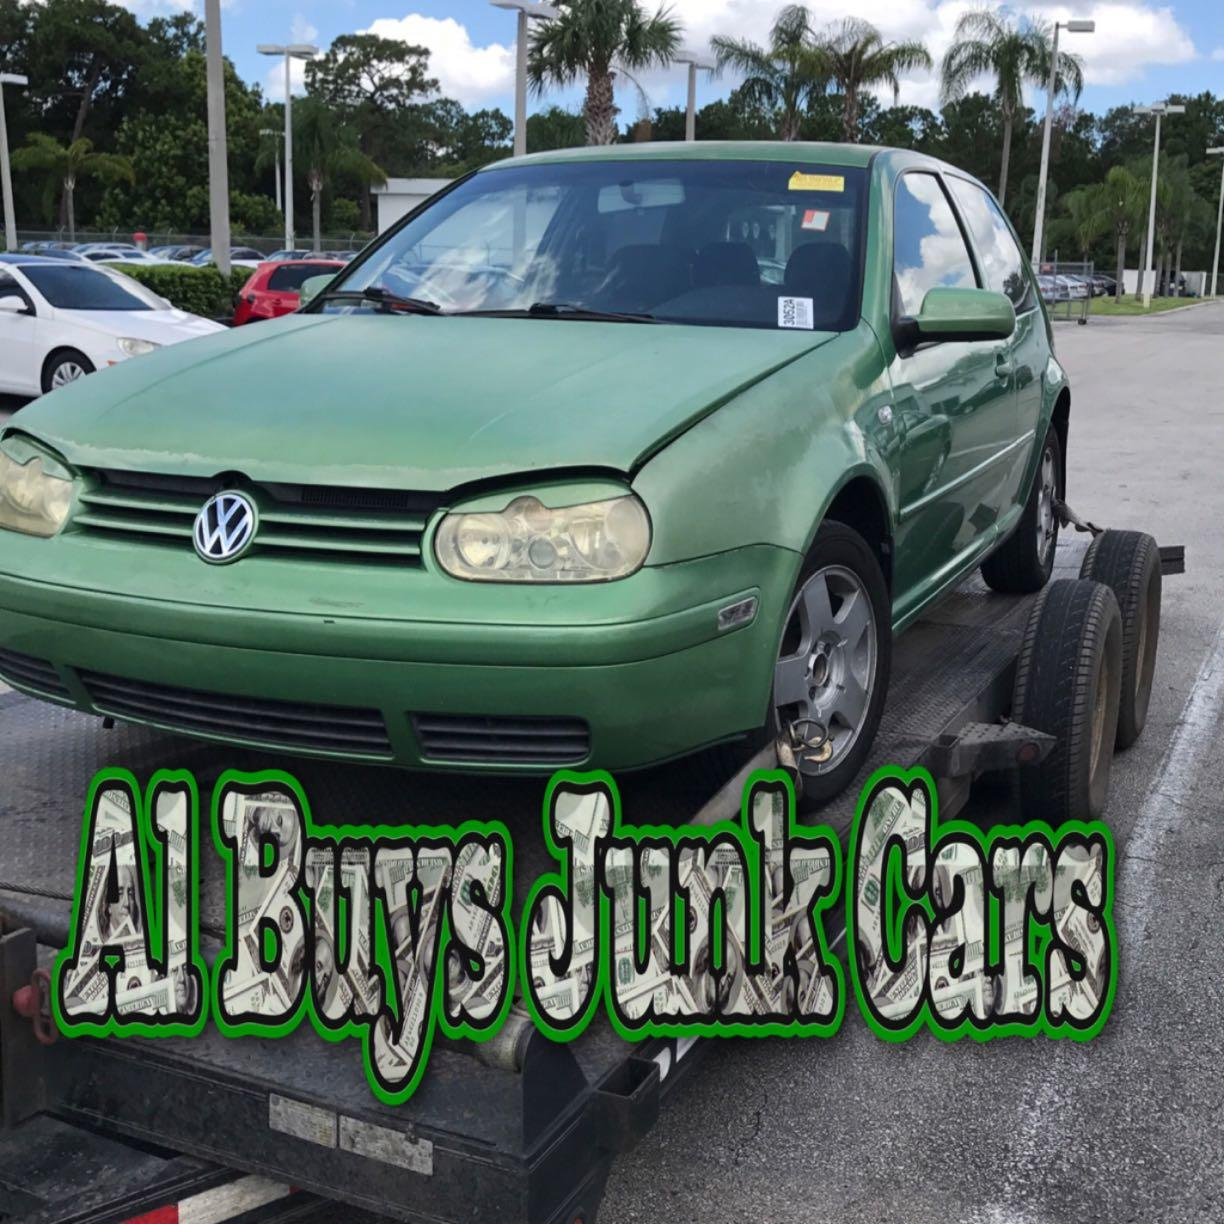 About us - Al Buys Junk Cars - Orlando Salvage Yard Junkyard